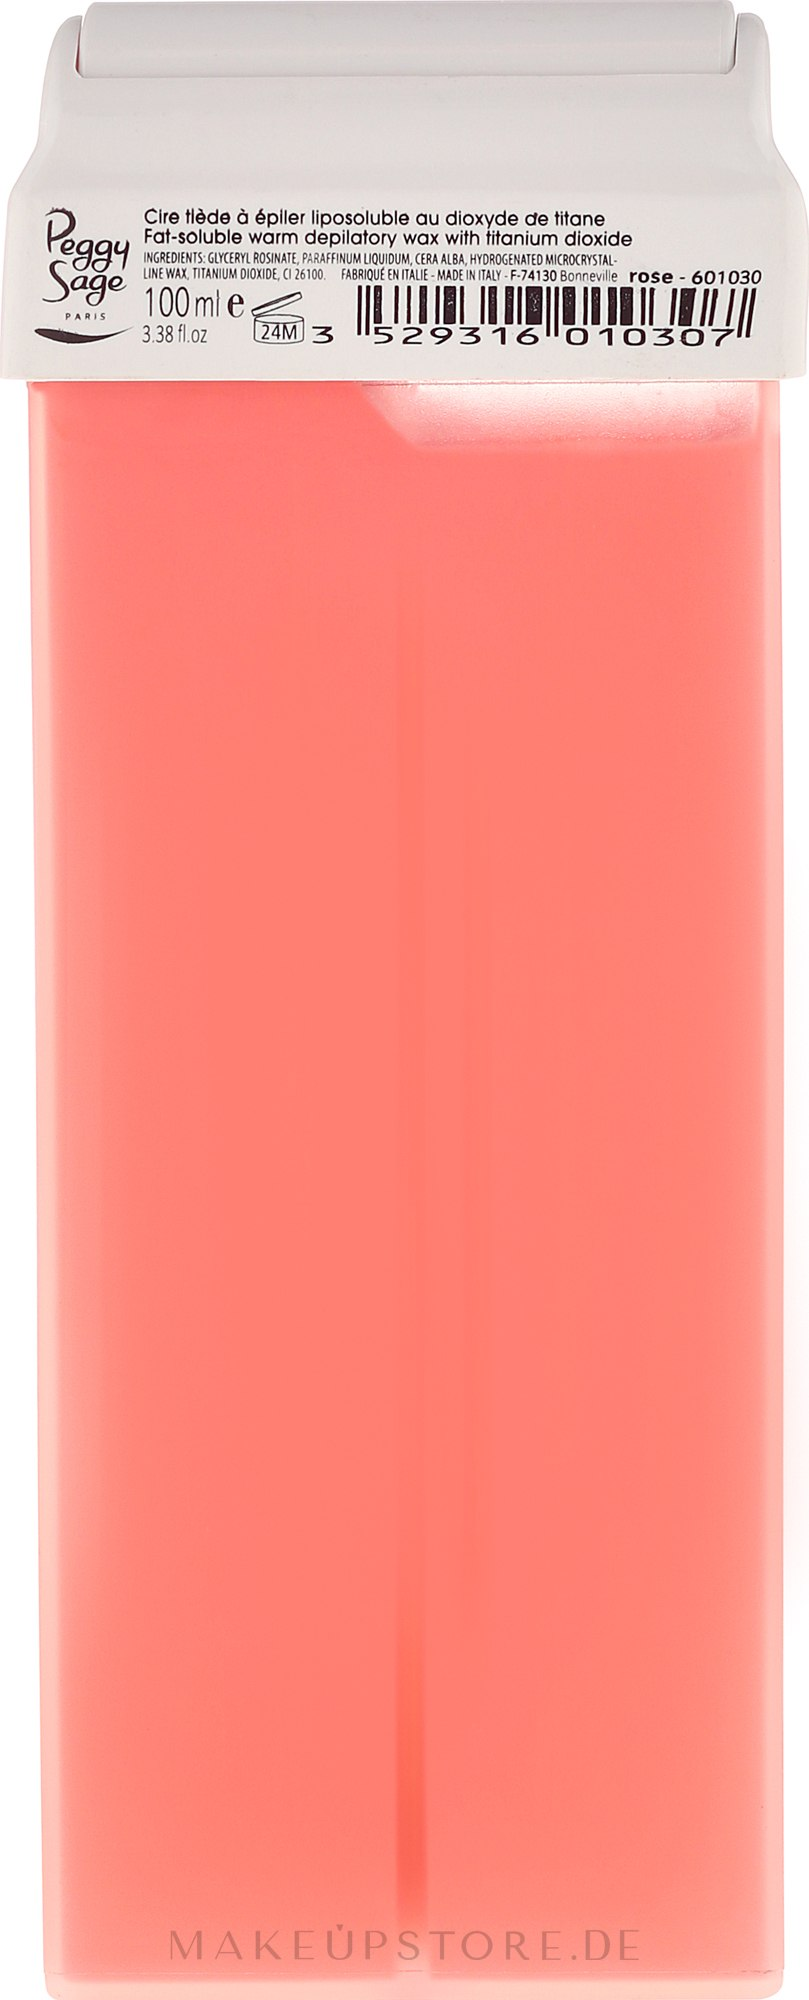 Breiter Roll-on-Wachsapplikator für den - Peggy Sage Cartridge Of Fat-Soluble Warm Depilatory Wax Rose — Bild 100 ml